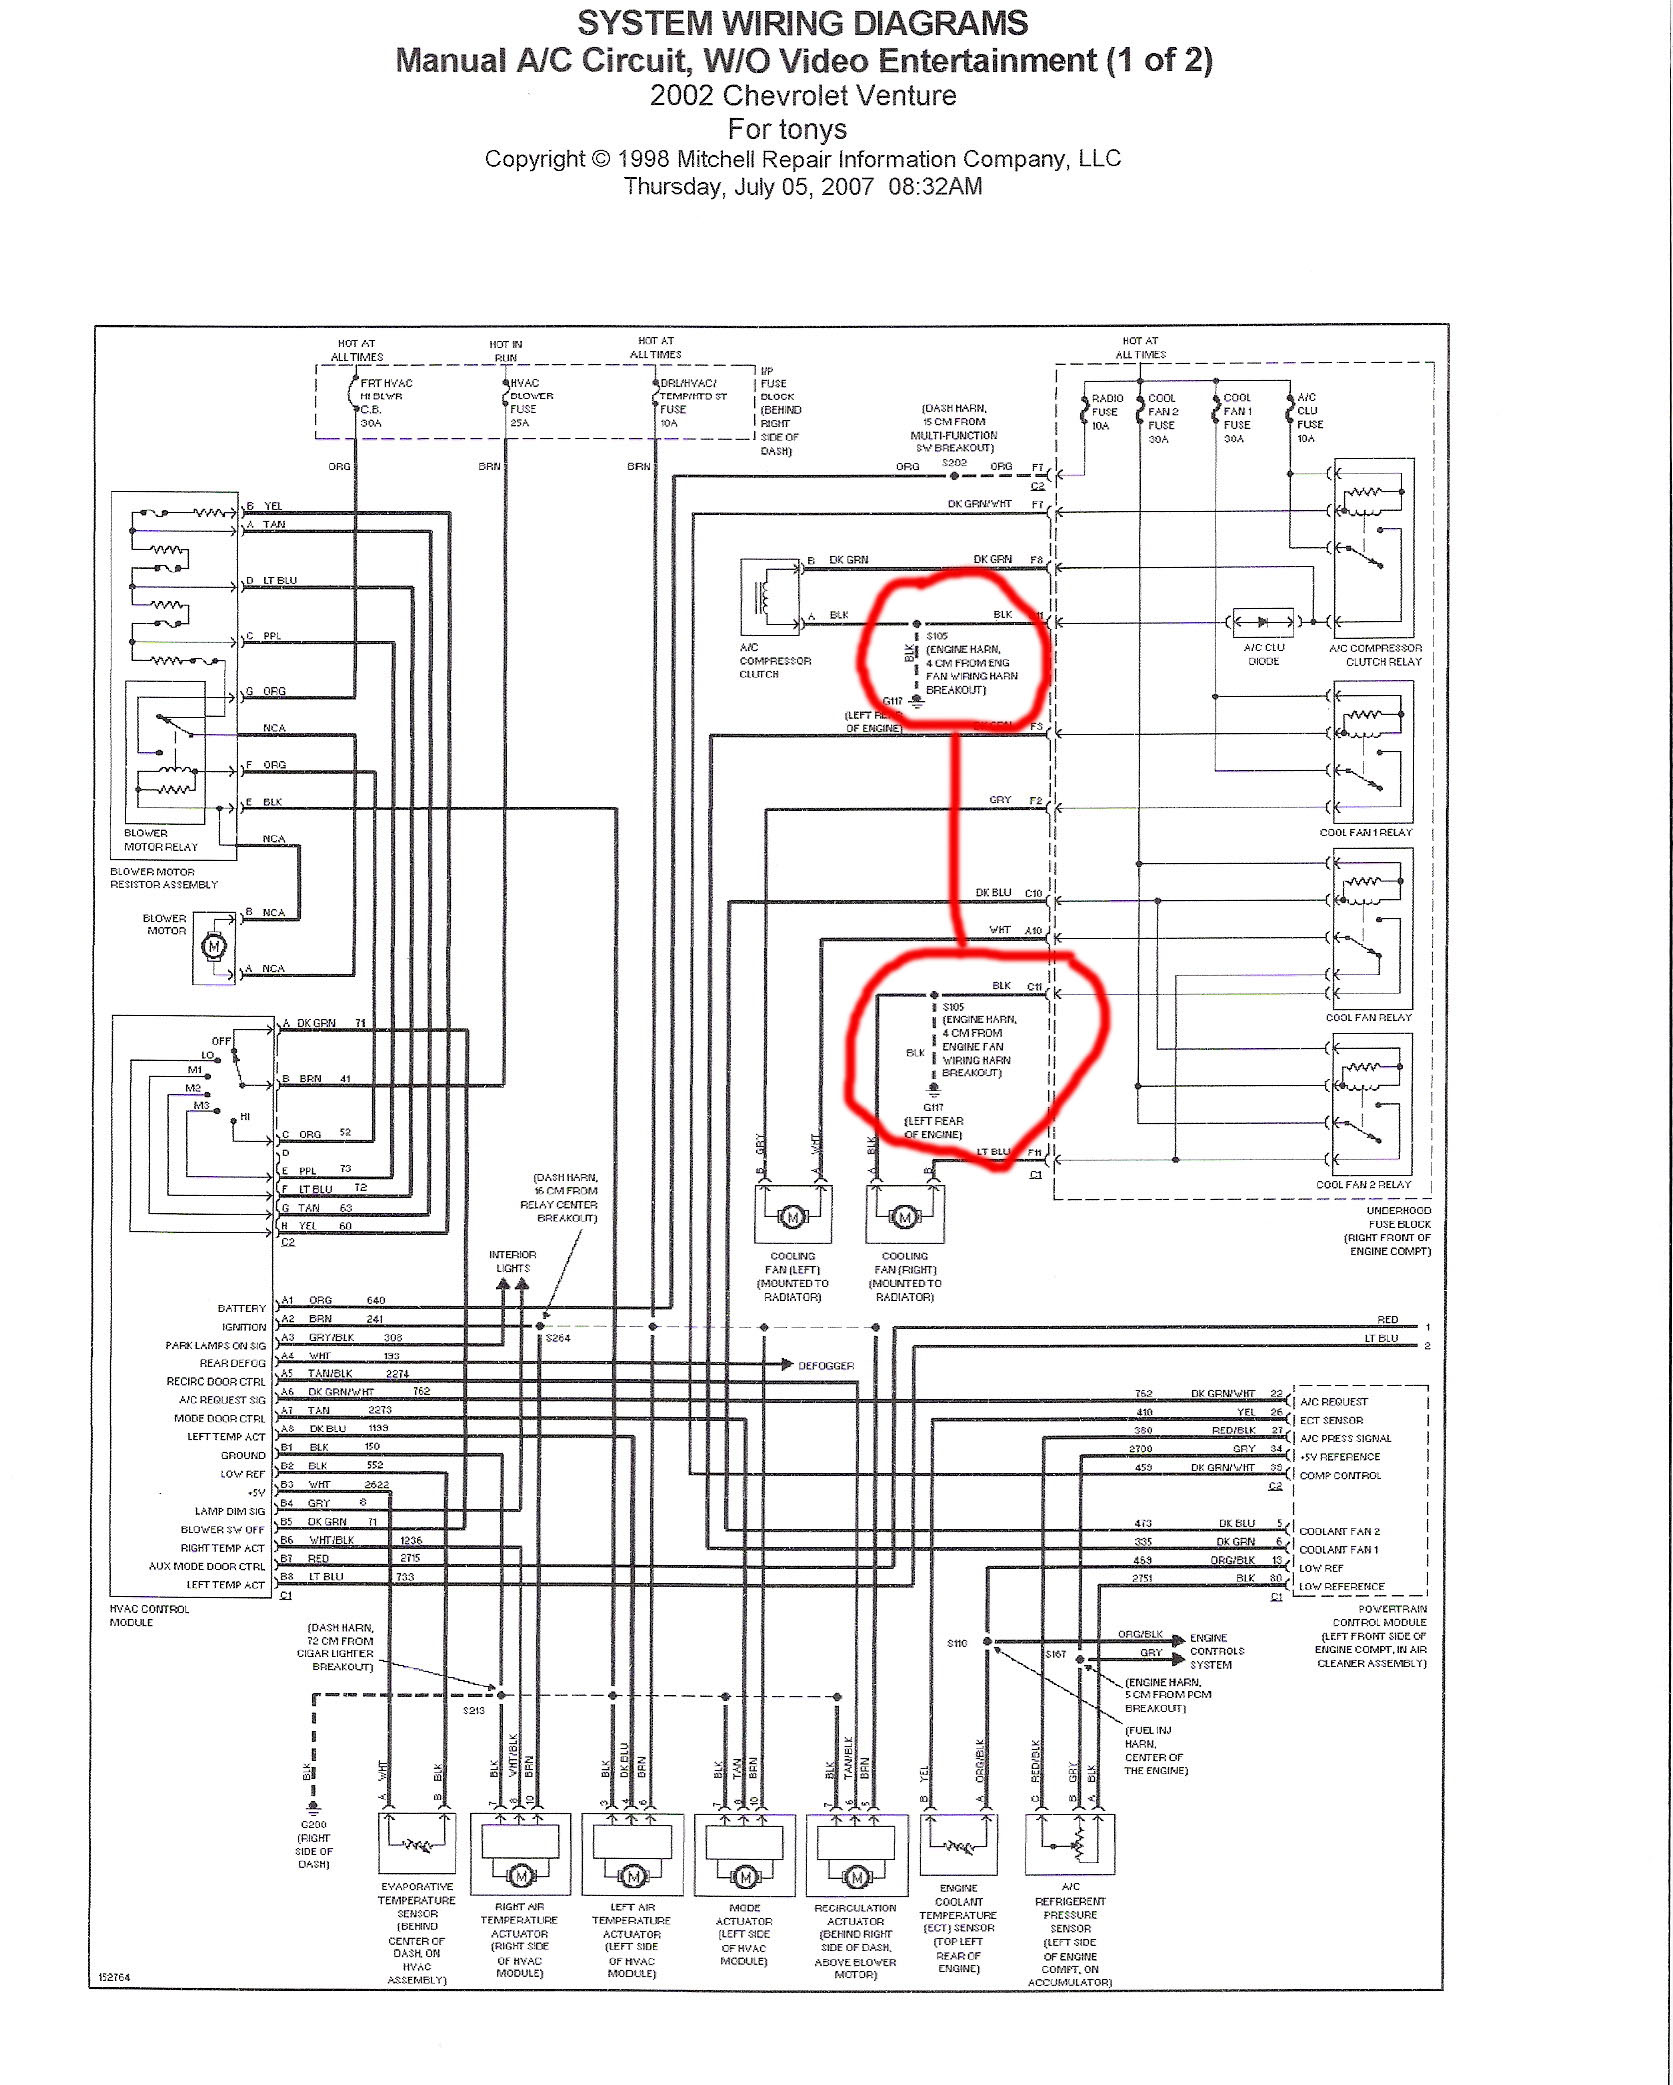 2001 Tahoe Wiring Diagram from i0.wp.com